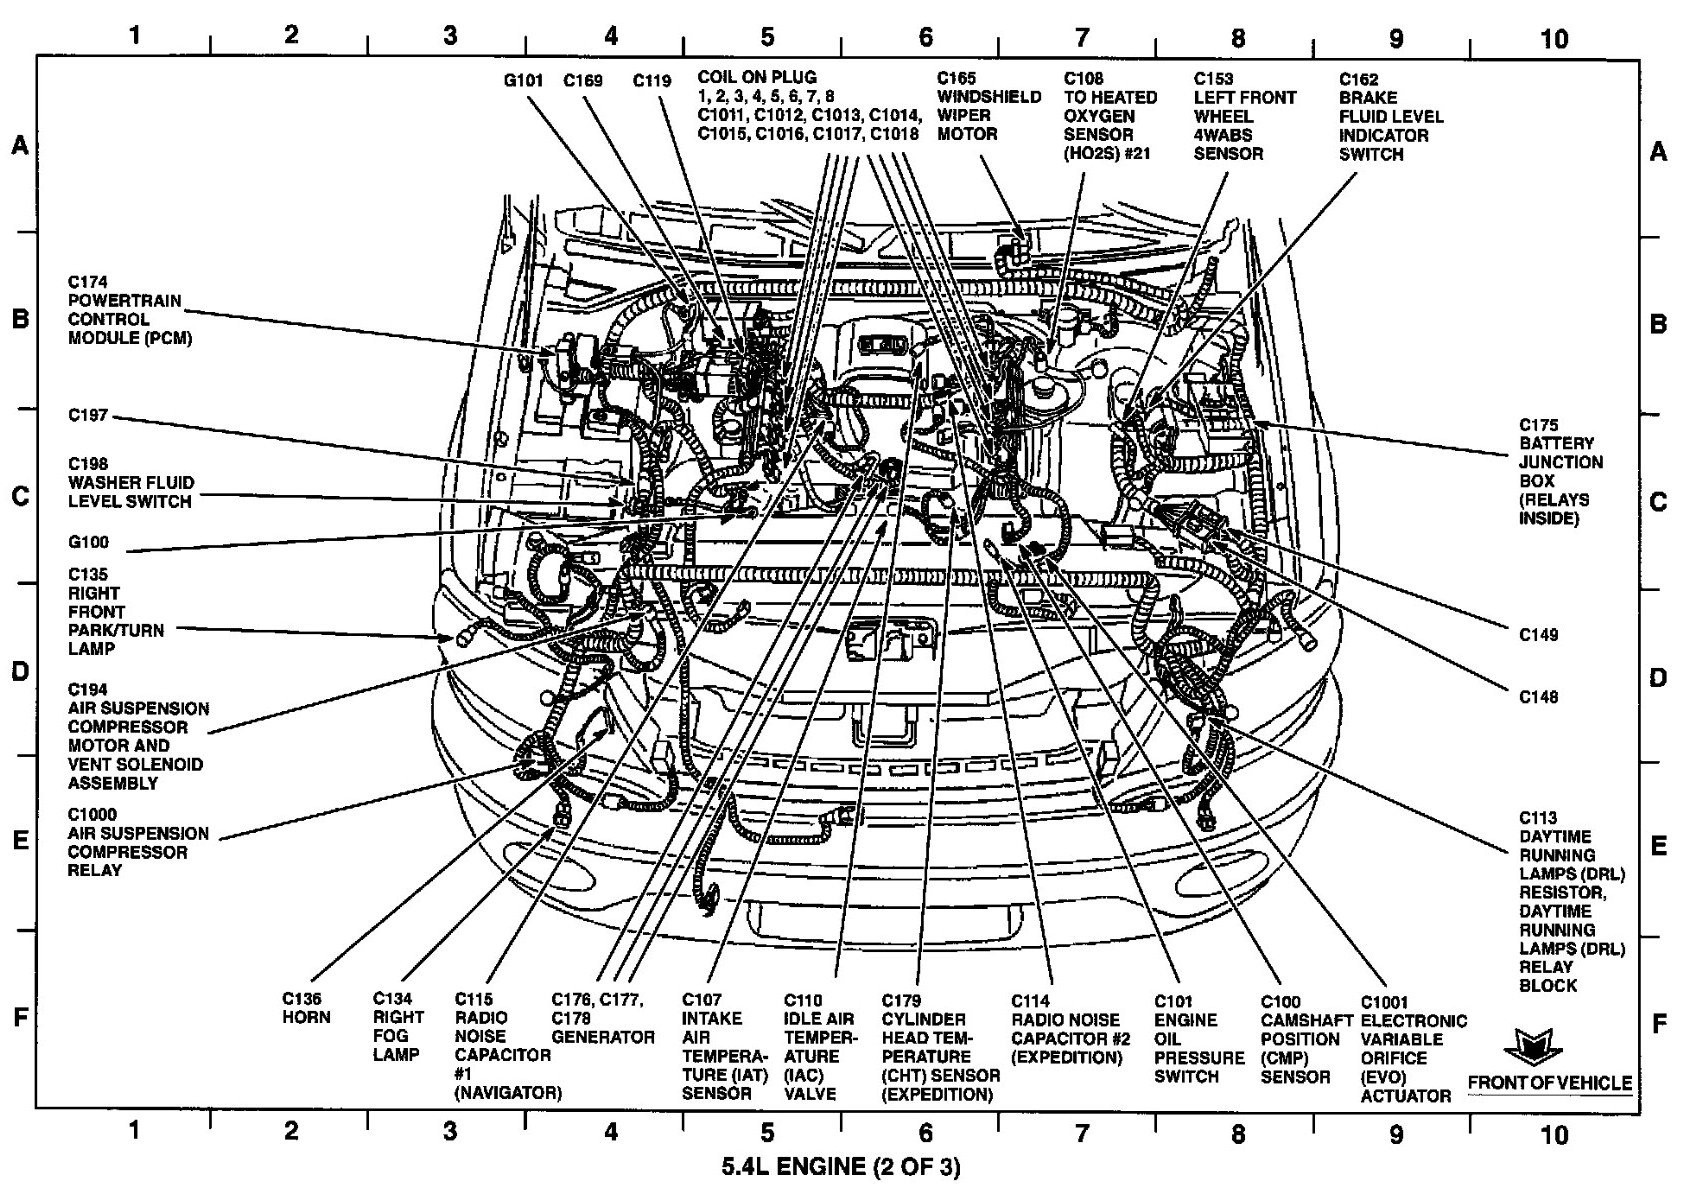 Bmw Z3 2 8 Engine Diagram Wiring Diagram List Started D List Started D Salumimastroenrico It